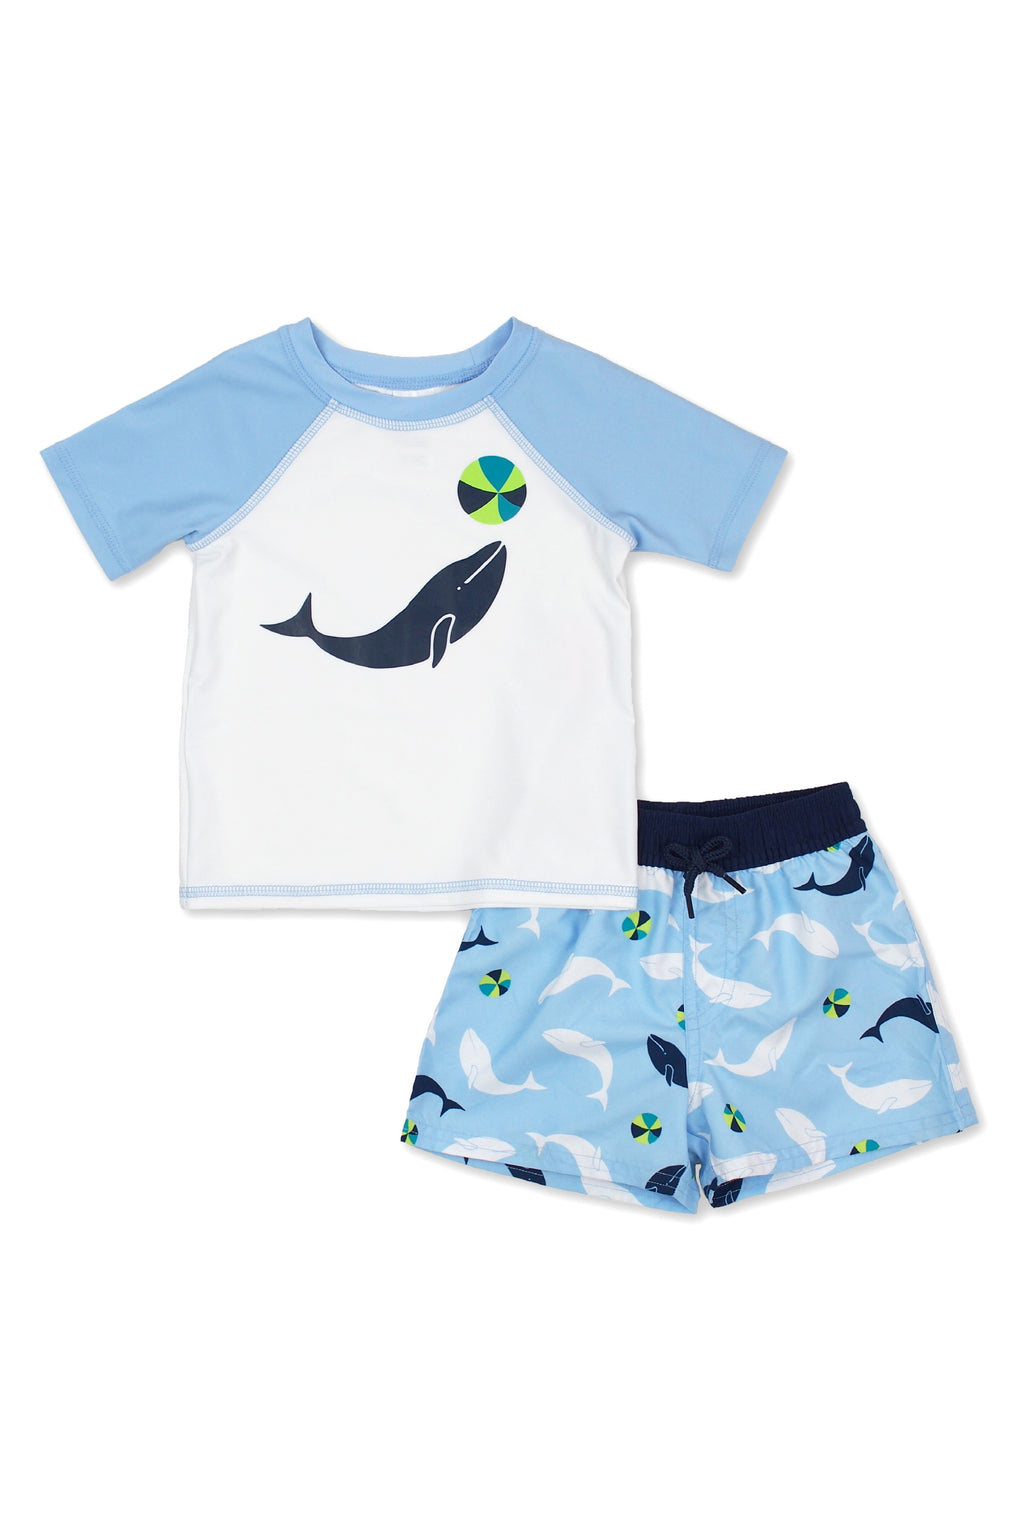 Boys Surf Playing Whale Short Sleeve Rash Guard Set, Blue